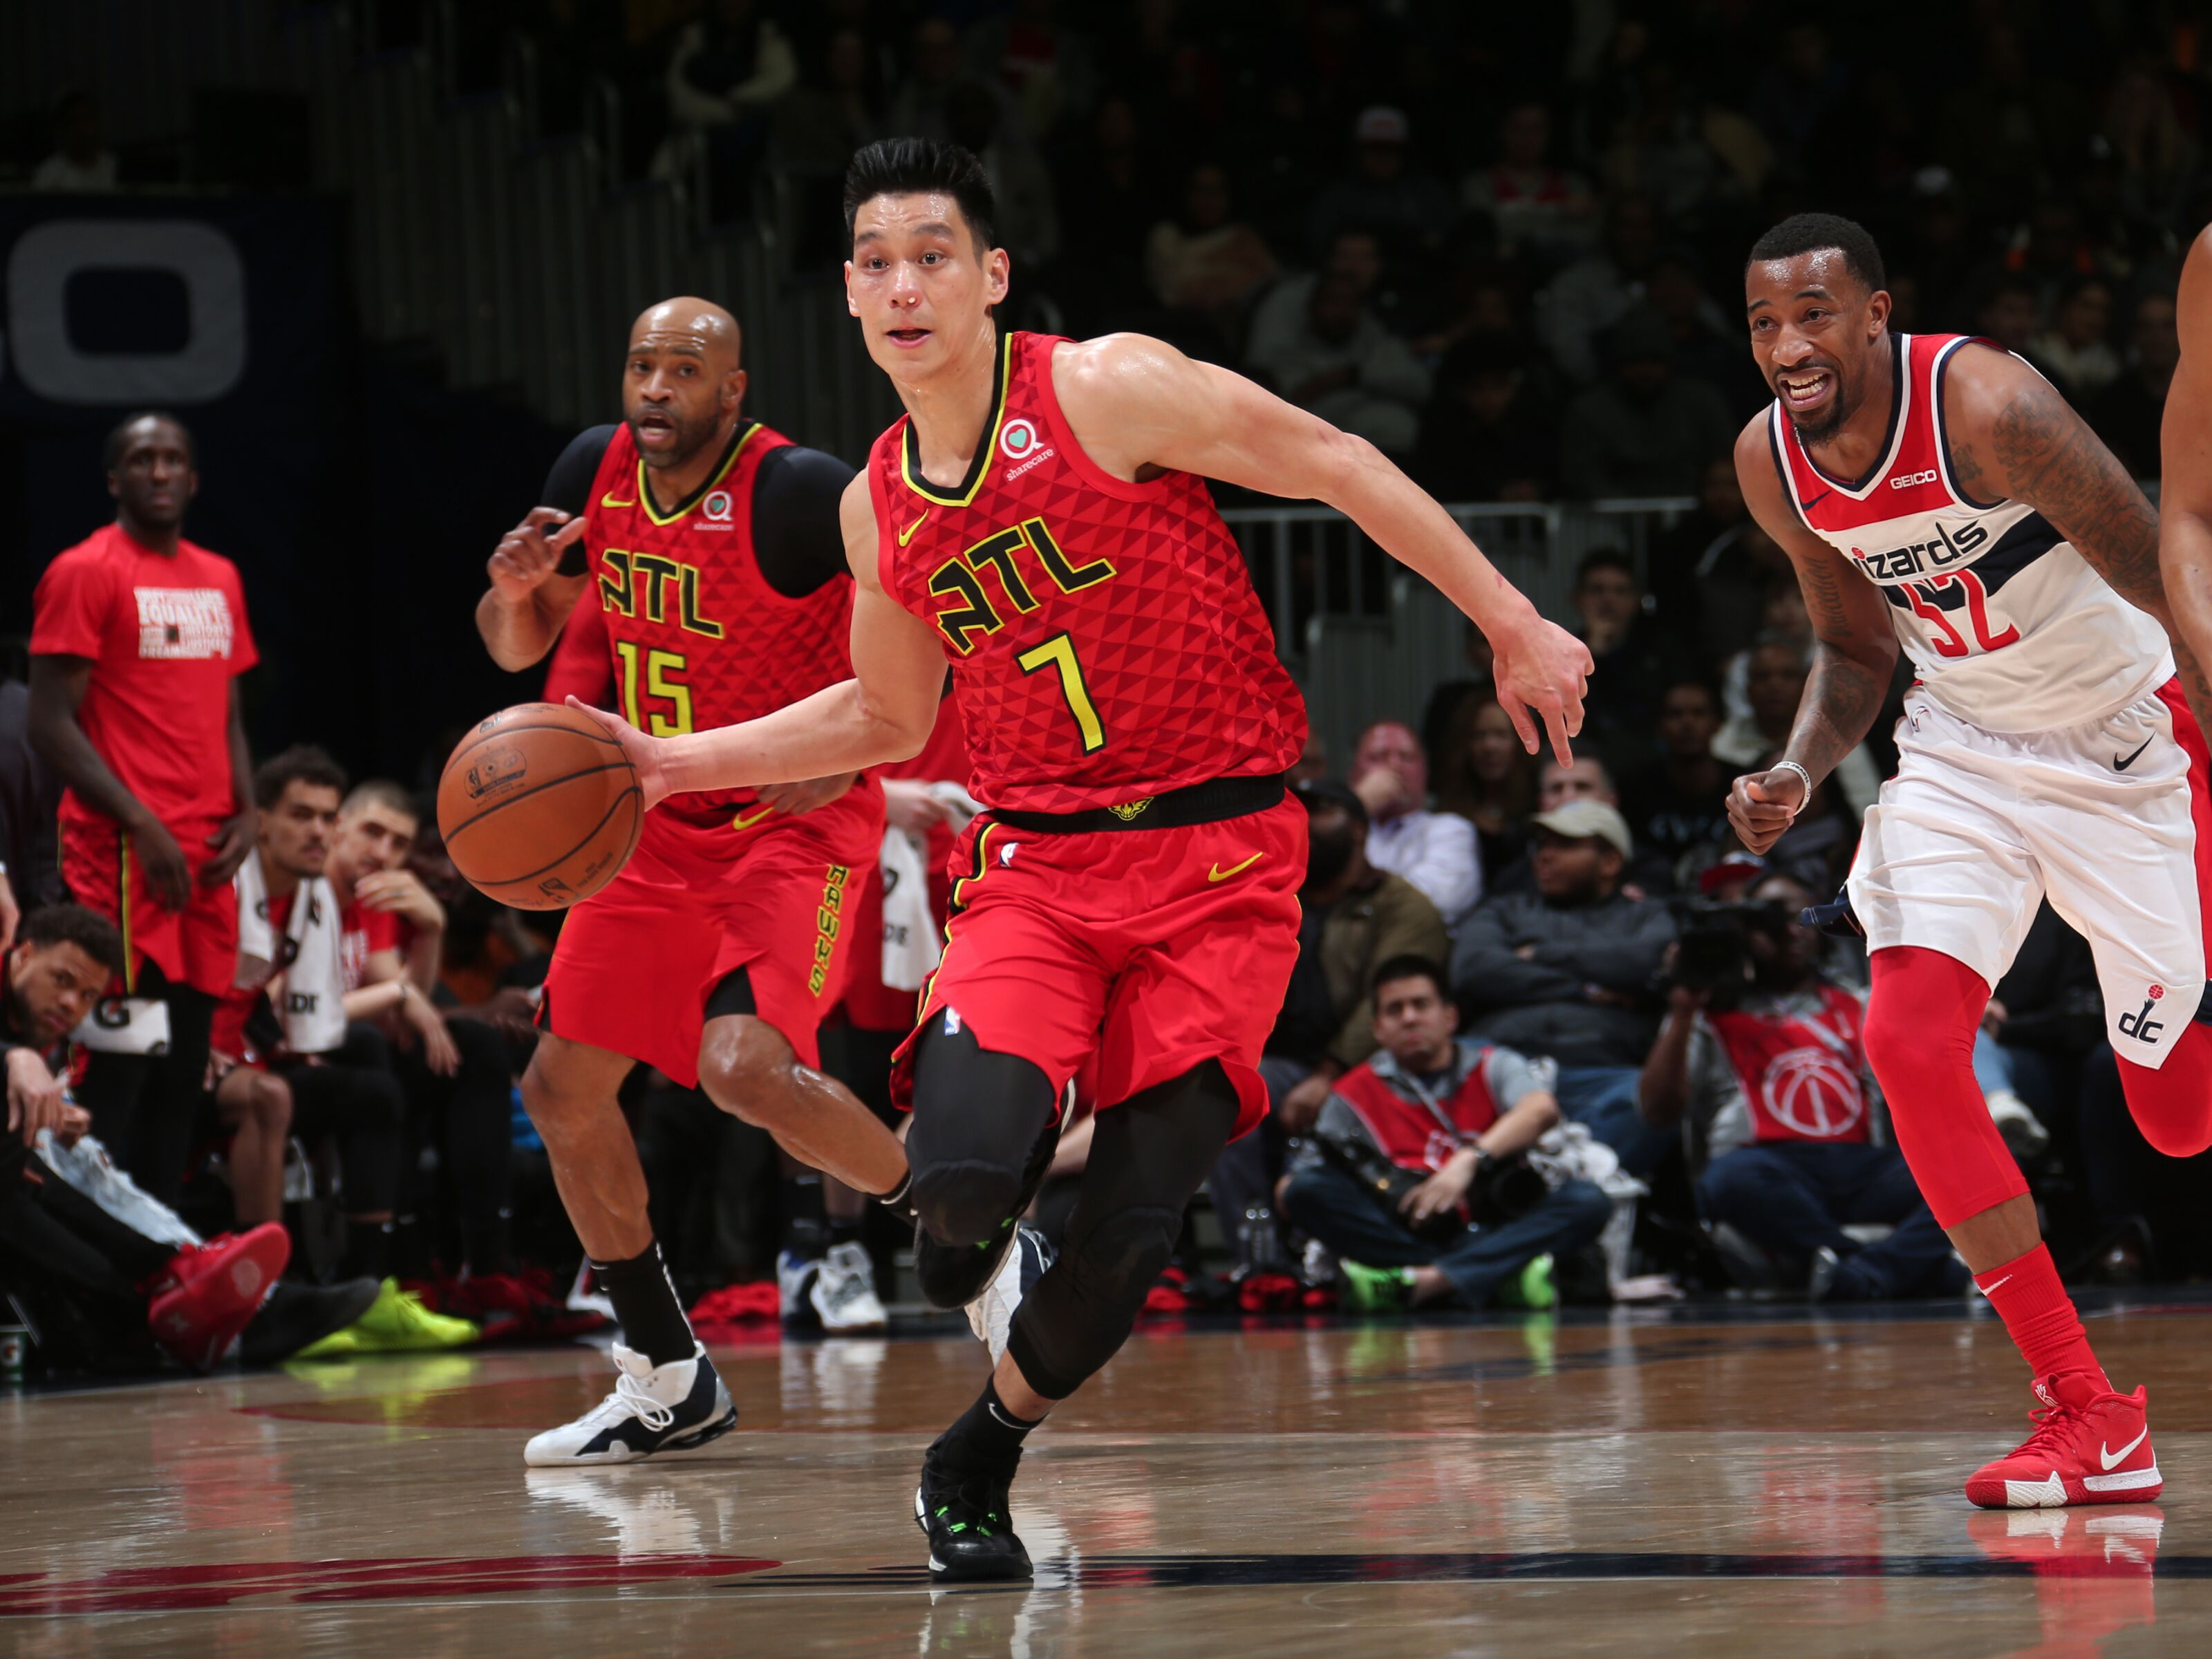 WASHINGTON, DC - FEBRUARY 4: Jeremy Lin #7 of the Atlanta Hawks handles the ball against the Washington Wizards on February 4, 2019 at Capital One Arena in Washington, DC. NOTE TO USER: User expressly acknowledges and agrees that, by downloading and/or using this photograph, user is consenting to the terms and conditions of the Getty Images License Agreement. Mandatory Copyright Notice: Copyright 2019 NBAE (Photo by Ned Dishman/NBAE via Getty Images)